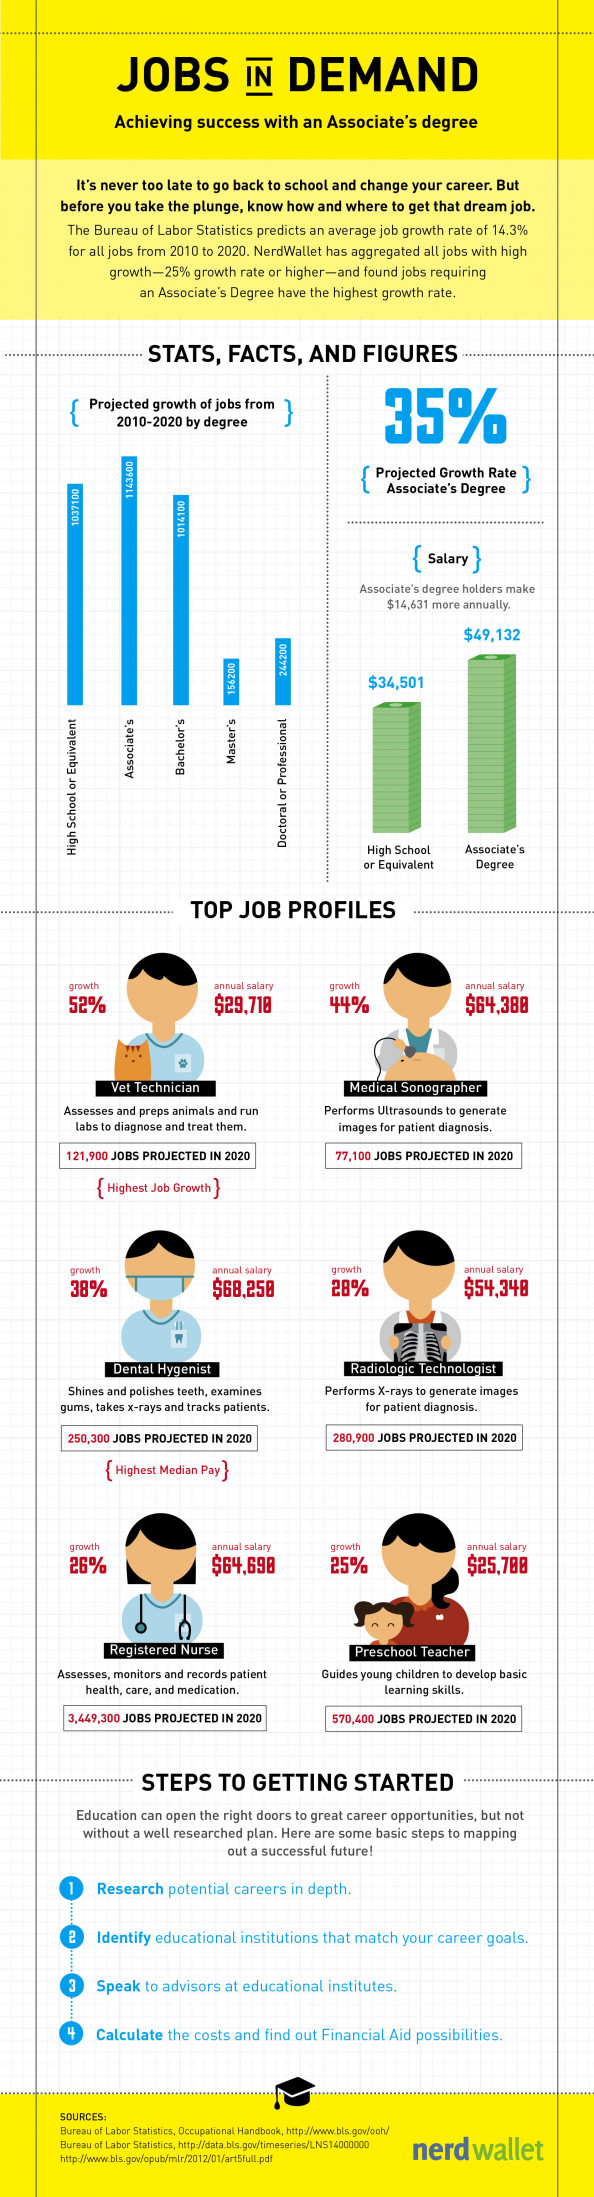 Jobs in Demand: Achieving Success with an Associate's Degree Infographic